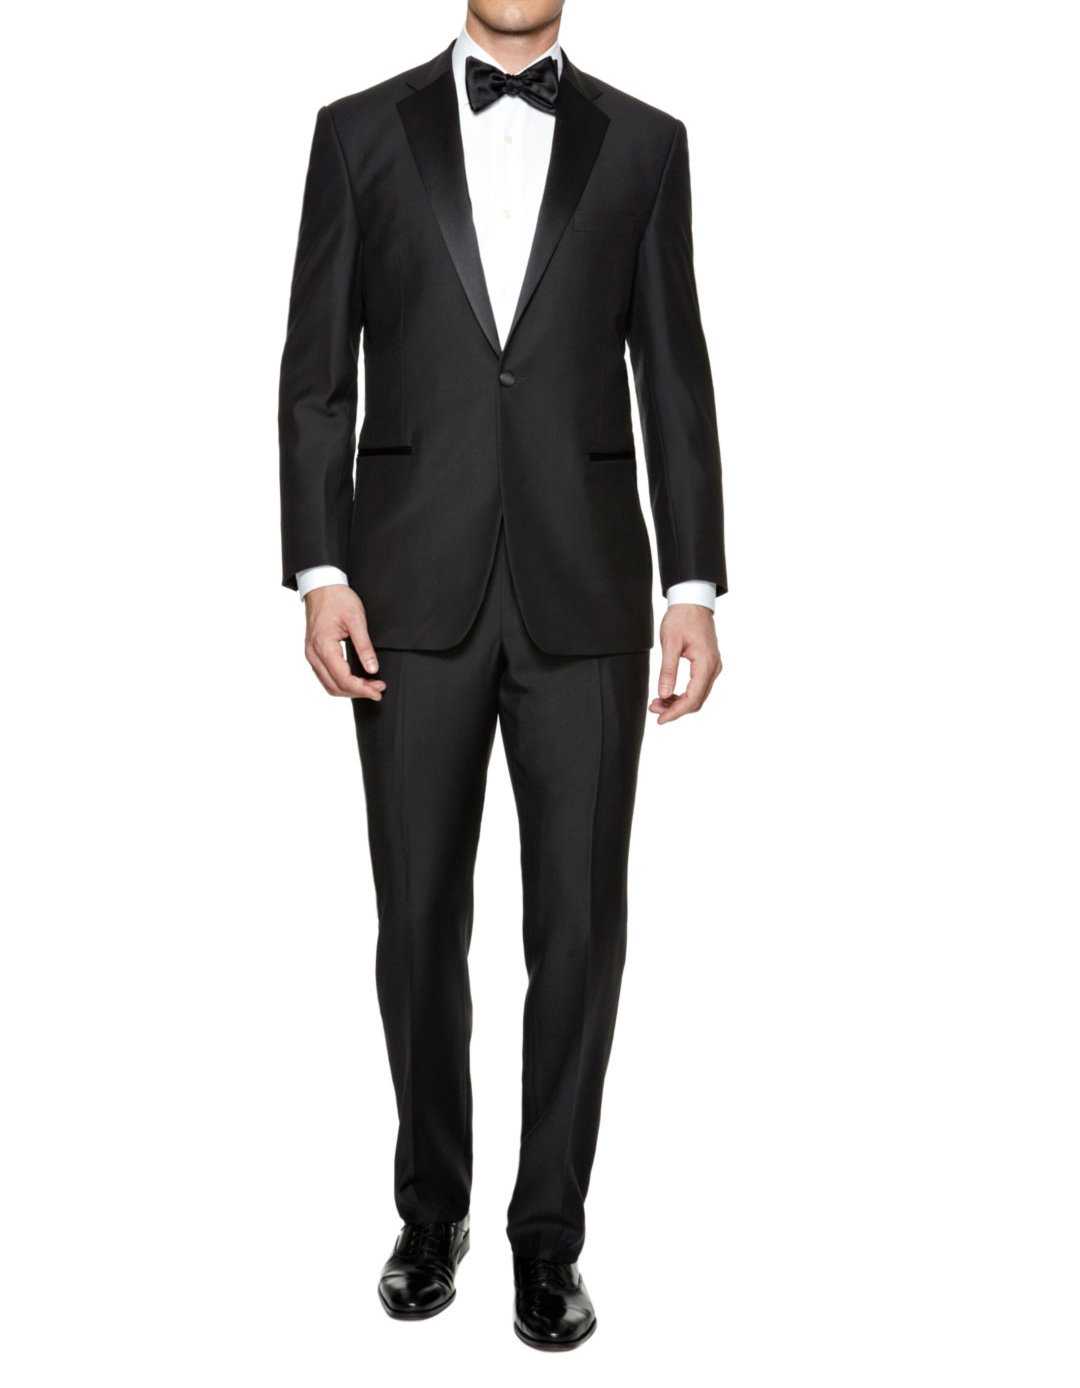 Braveman Mens Slim Fit Notched Lapel 2 Piece Tuxedo, Black, Size 34Sx28W